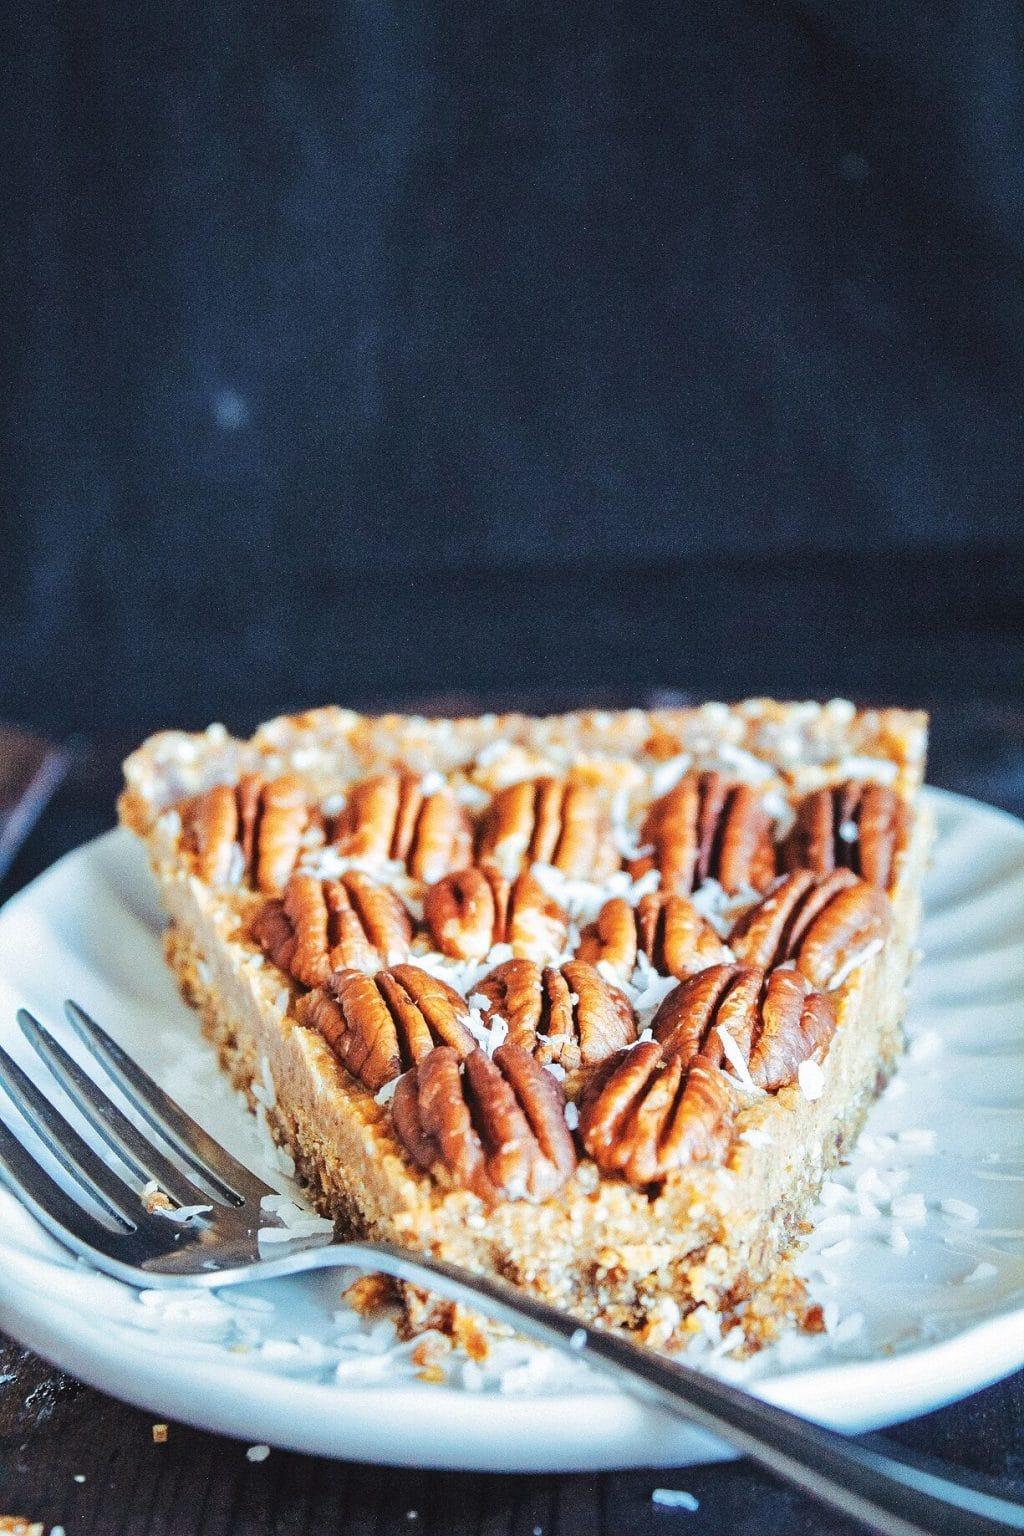 A slice of maple pecan pie on a white plate with a silver fork resting on the edge of the plate